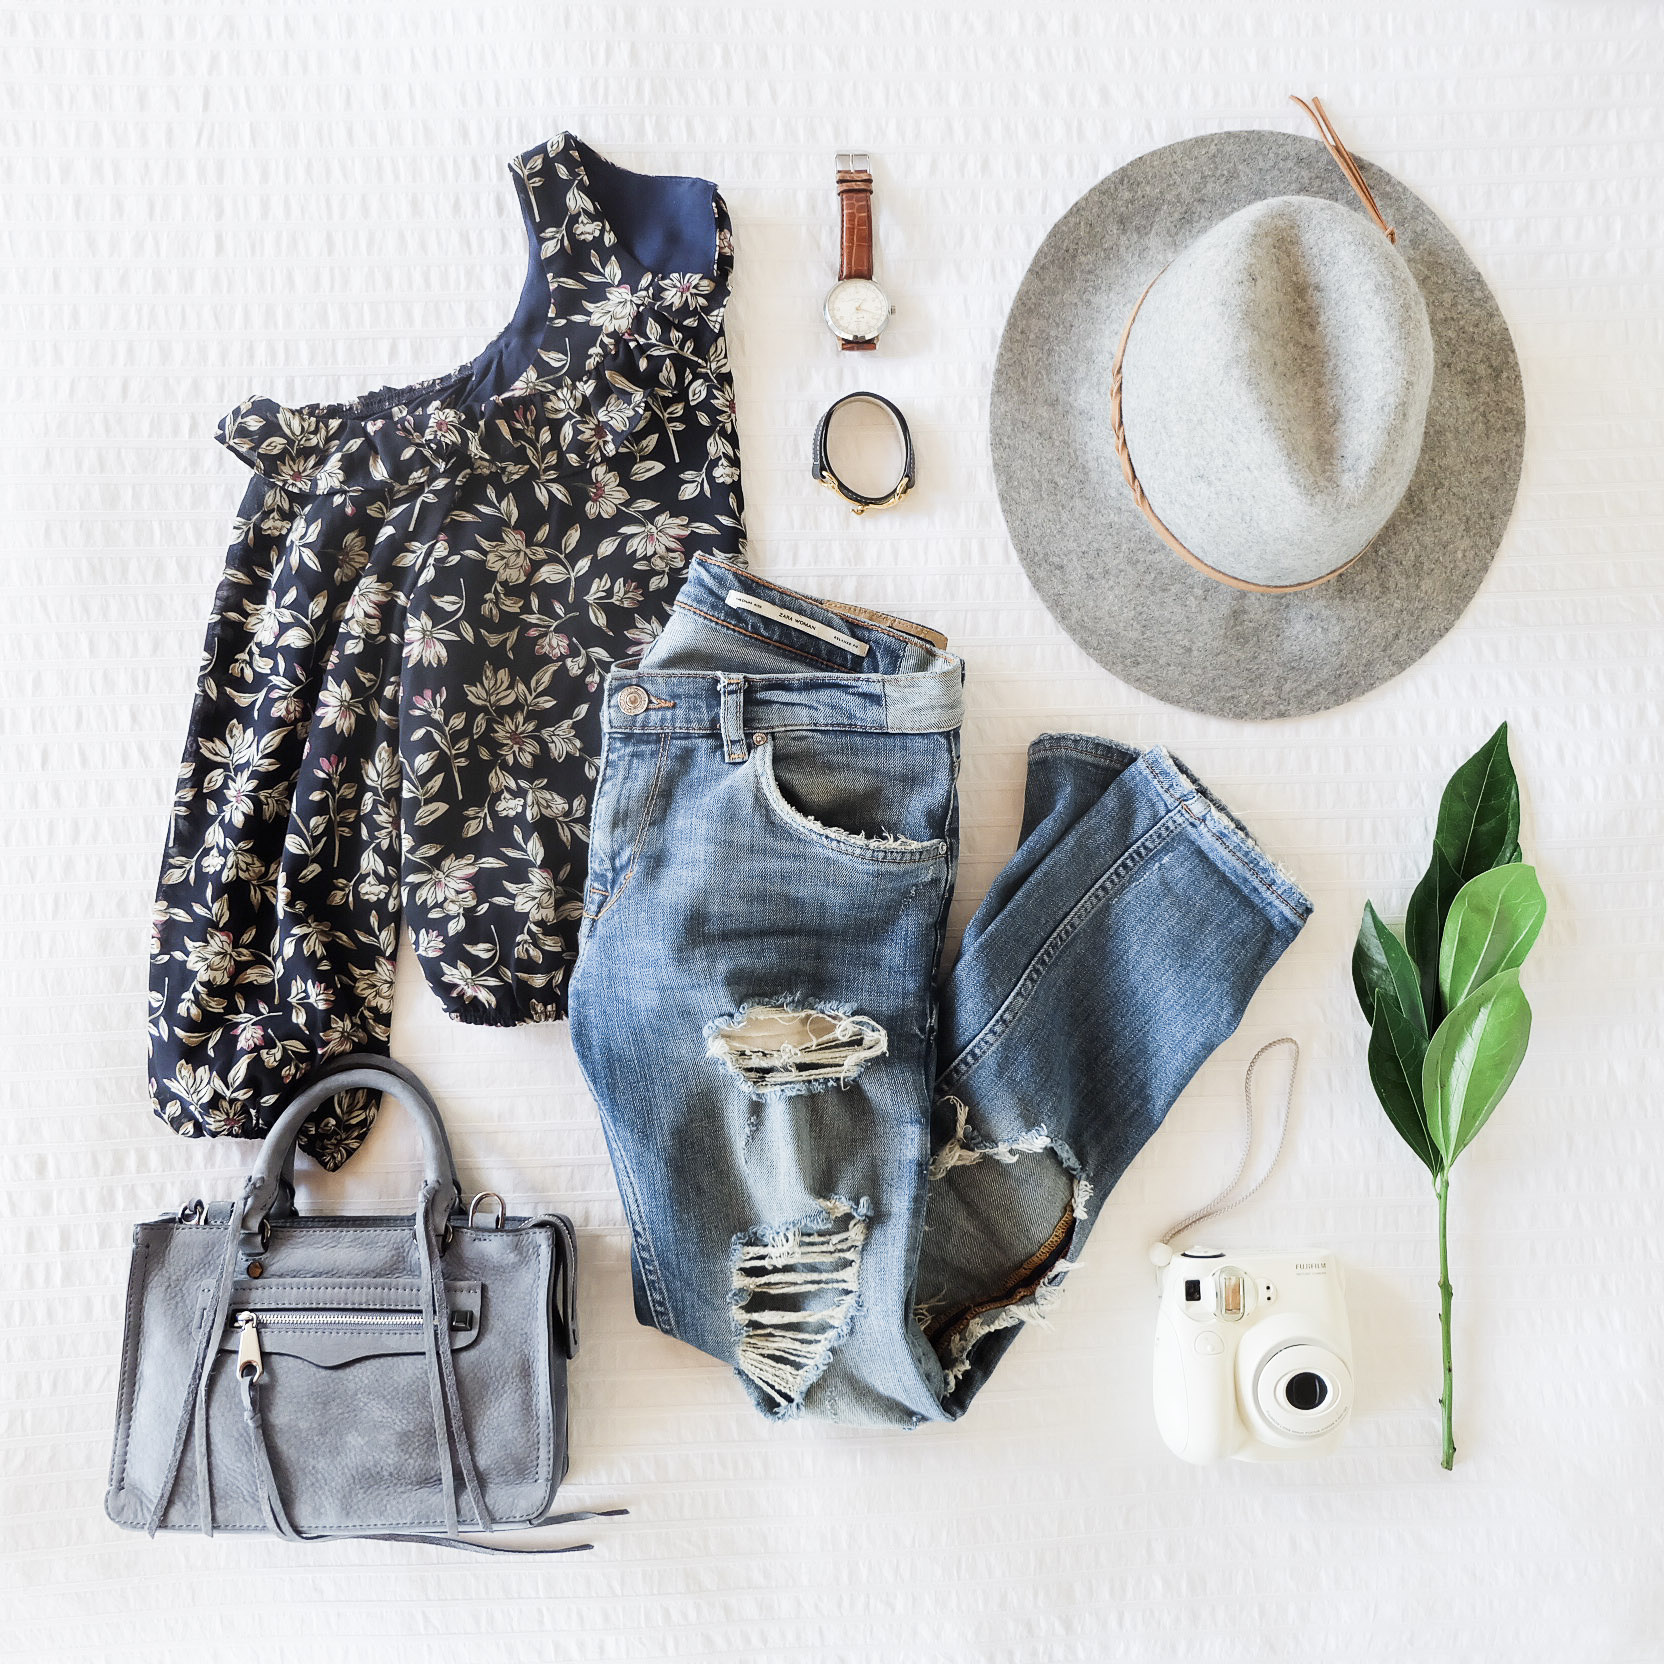 Cute Fall Outfits, Destroyed Denim Skinny Jeans with JOA Cold Shoulder Floral Print Top, Rebeca Minkoff Micro Regan Satchel, Casual Weekend Outfit for Fall.